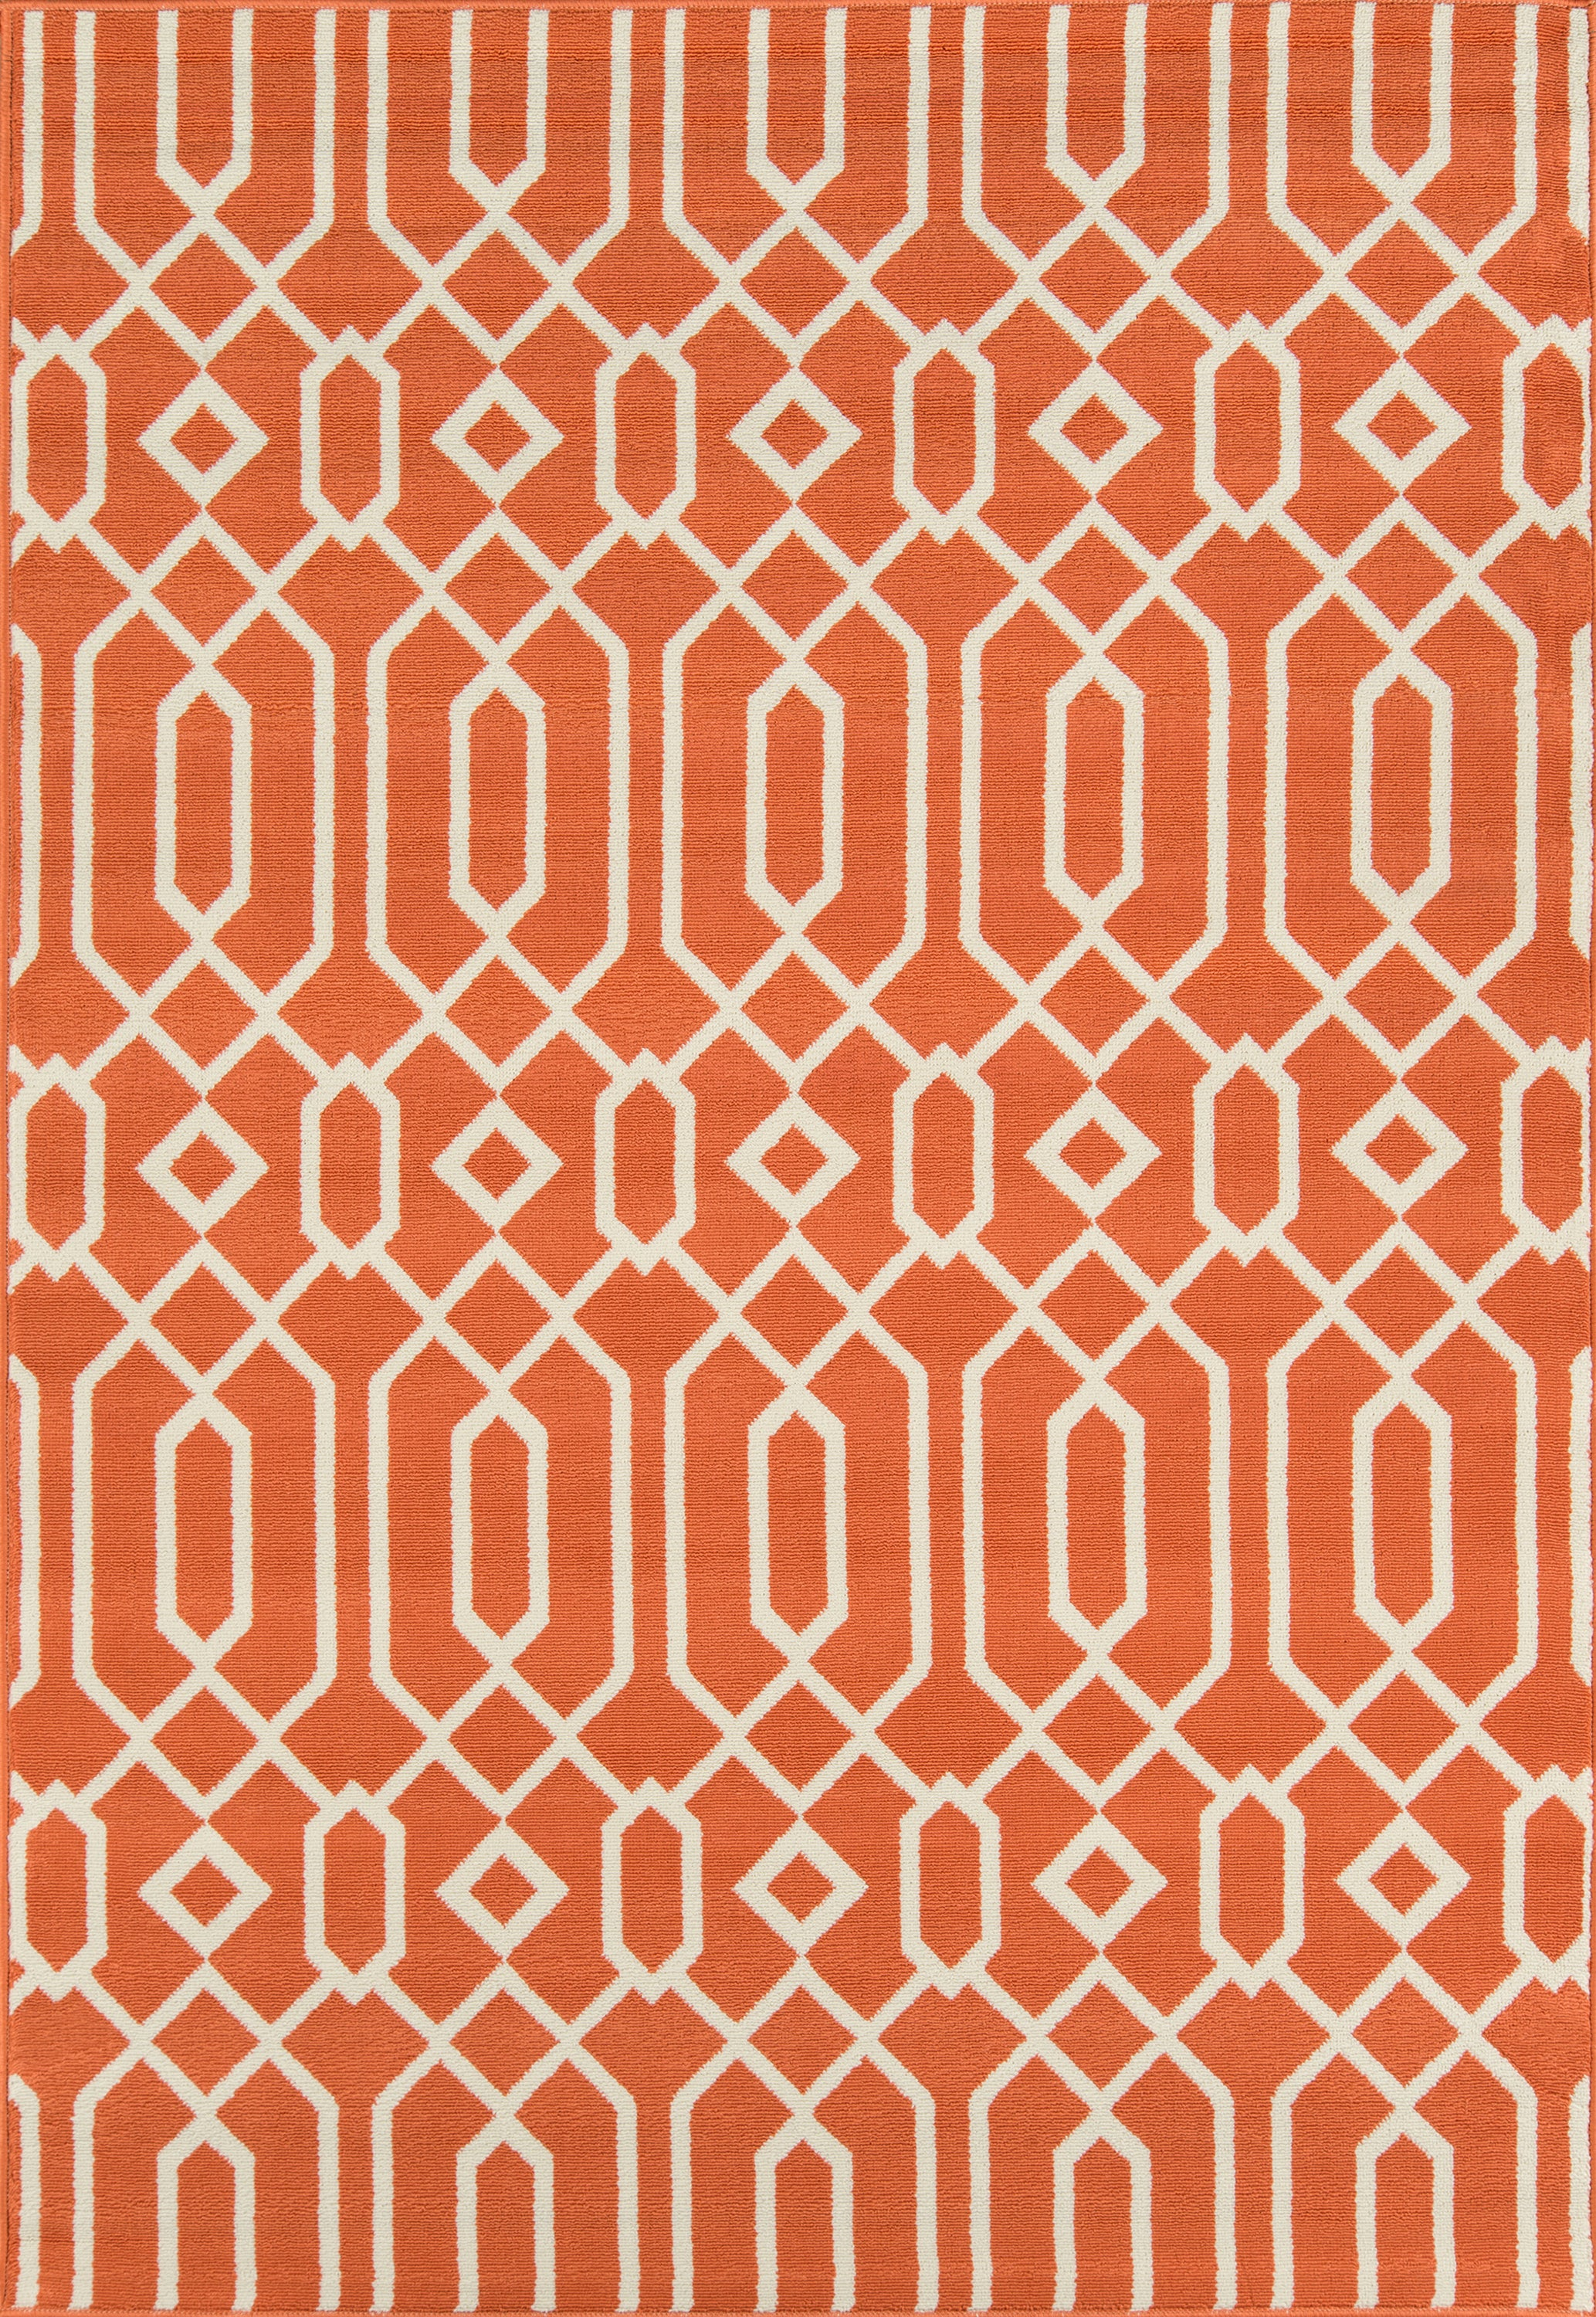 Rectangle 53x76 Orange Geometric Machine Made Synthetics Contemporary recommended for Kitchen, Bedroom, Bathroom, Outdoor, Dining Room, Office, Hallway, Living Room